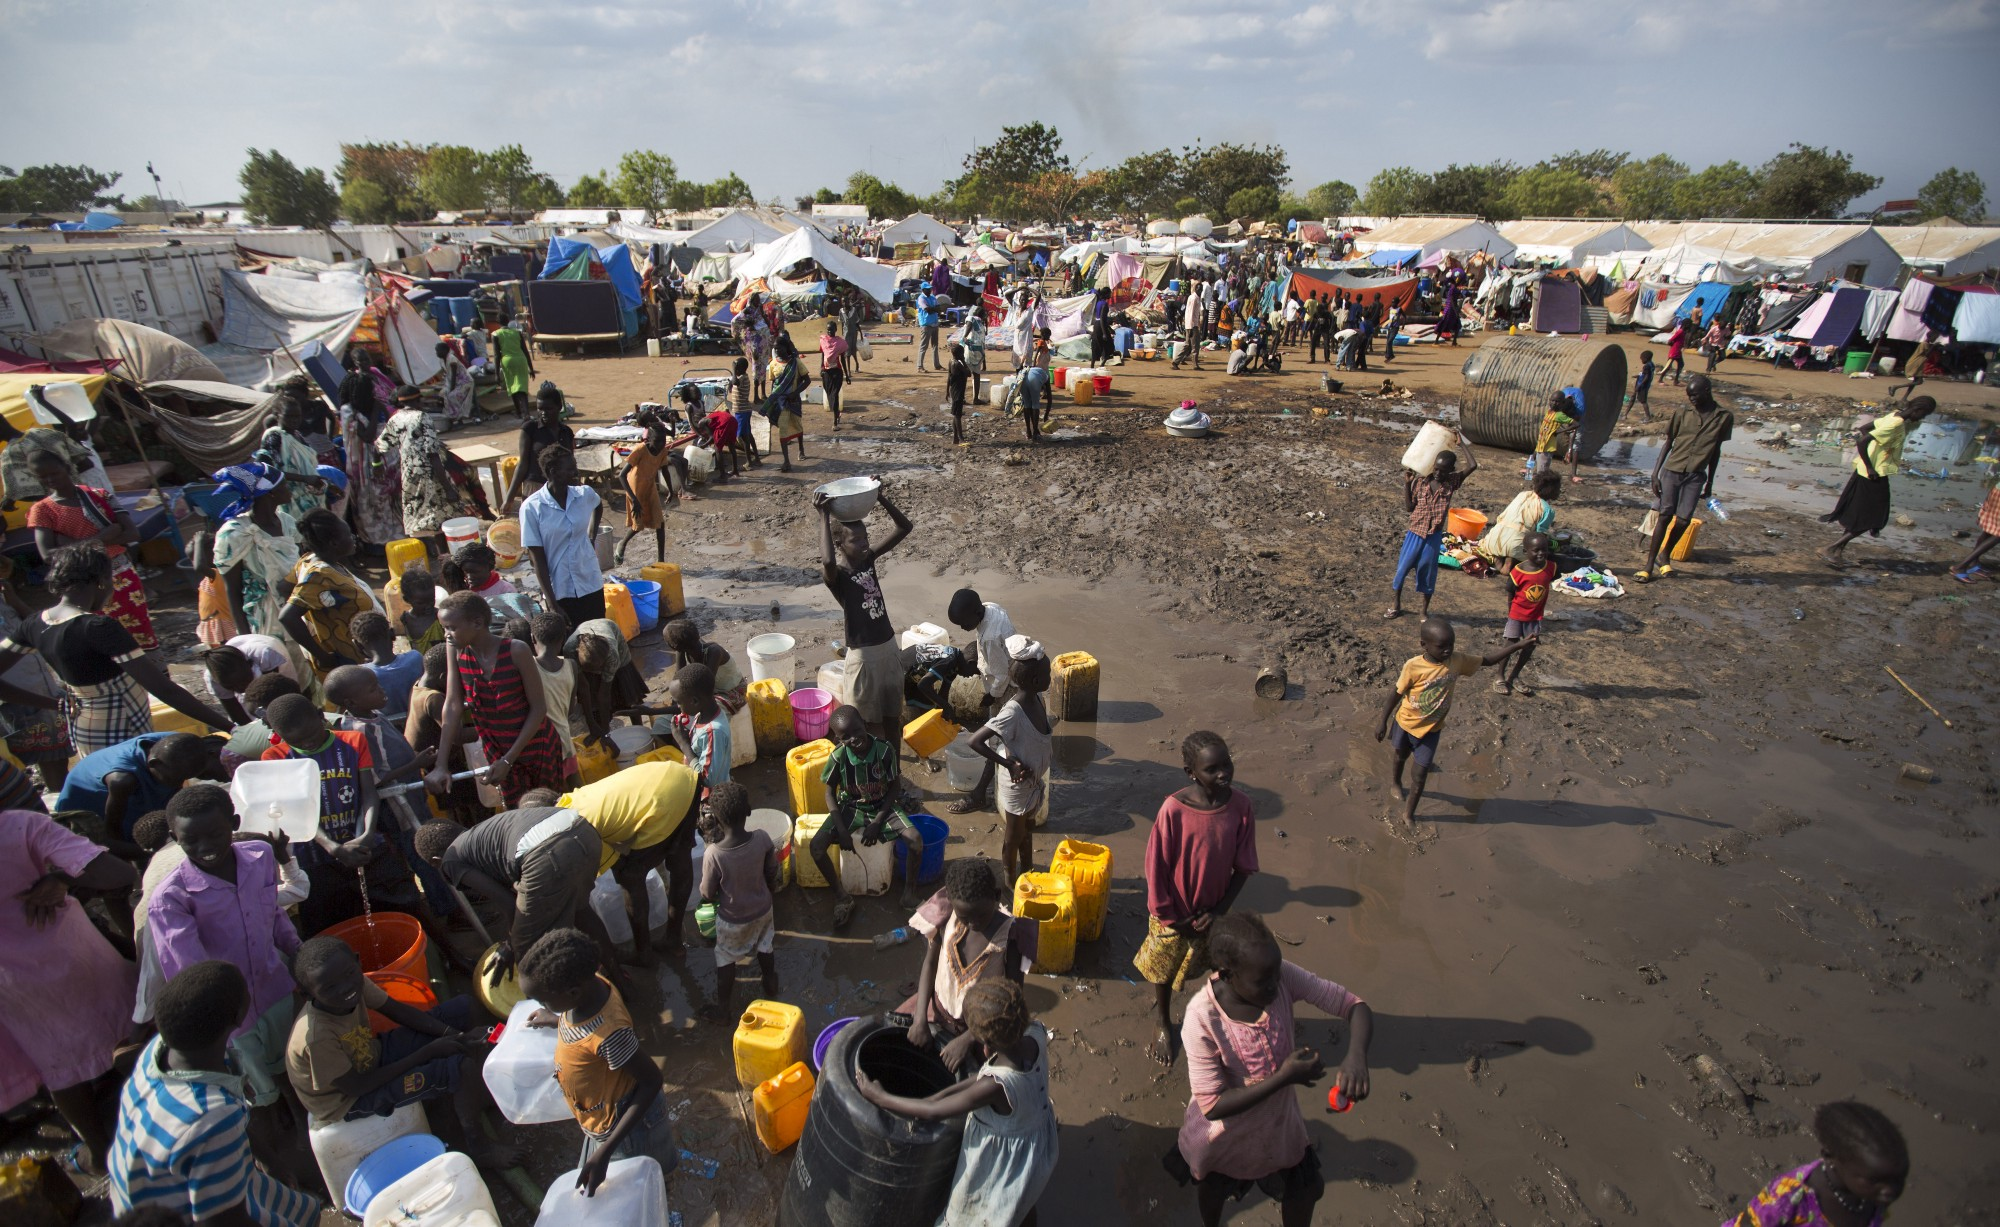 Almost 5 million people are currently at risk of going hungry. With famine already ravaging parts of South Sudan, people are dying of hunger — another 1 million people are on the brink of famine.